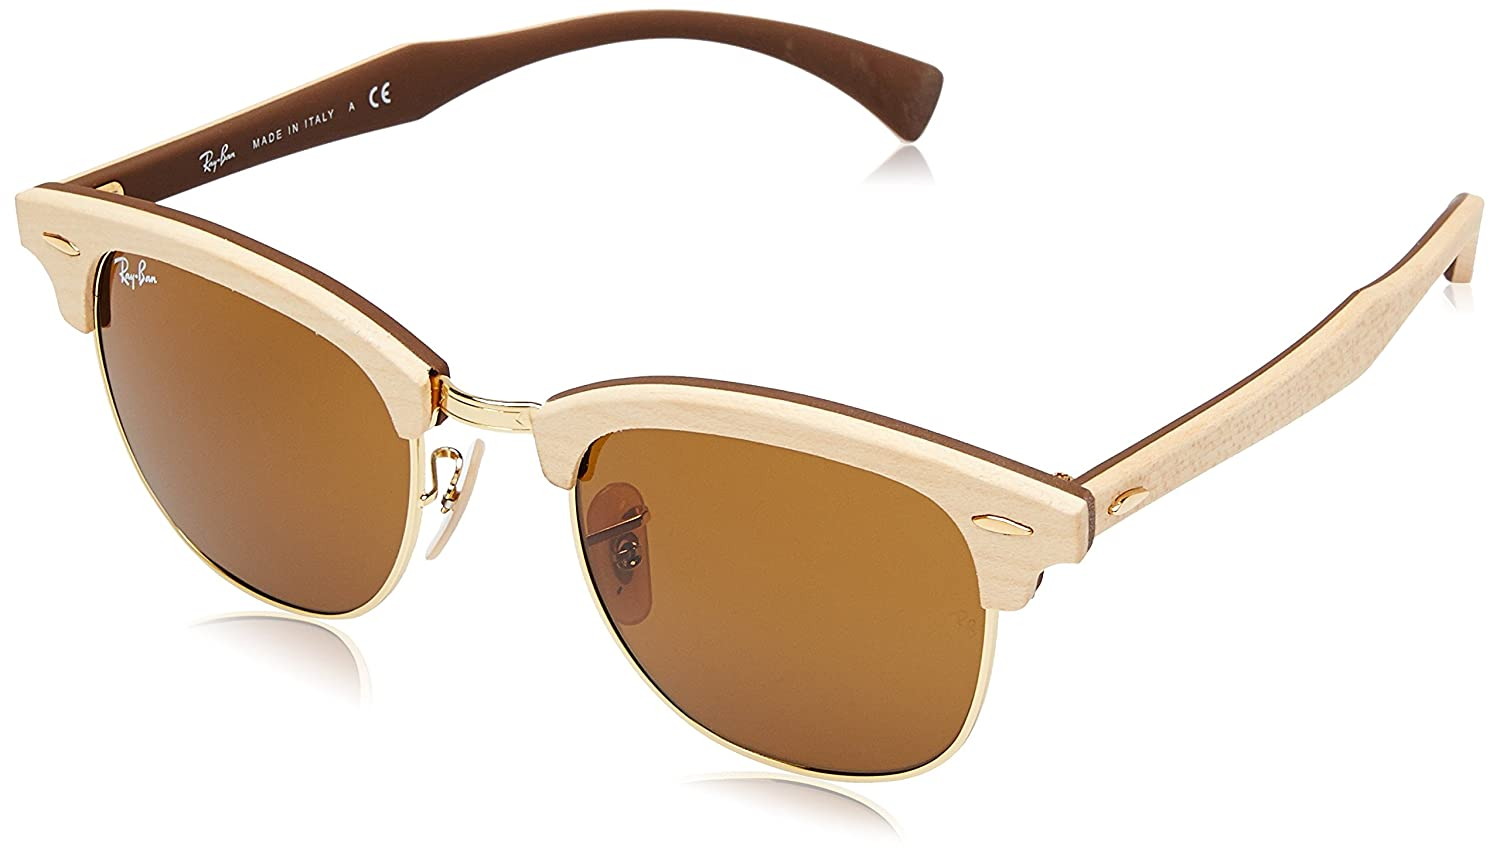 dcfb36772ae Ray-Ban Sonnenbrille CLUBMASTER (RB 3016)  Rayban  Amazon.co.uk  Clothing